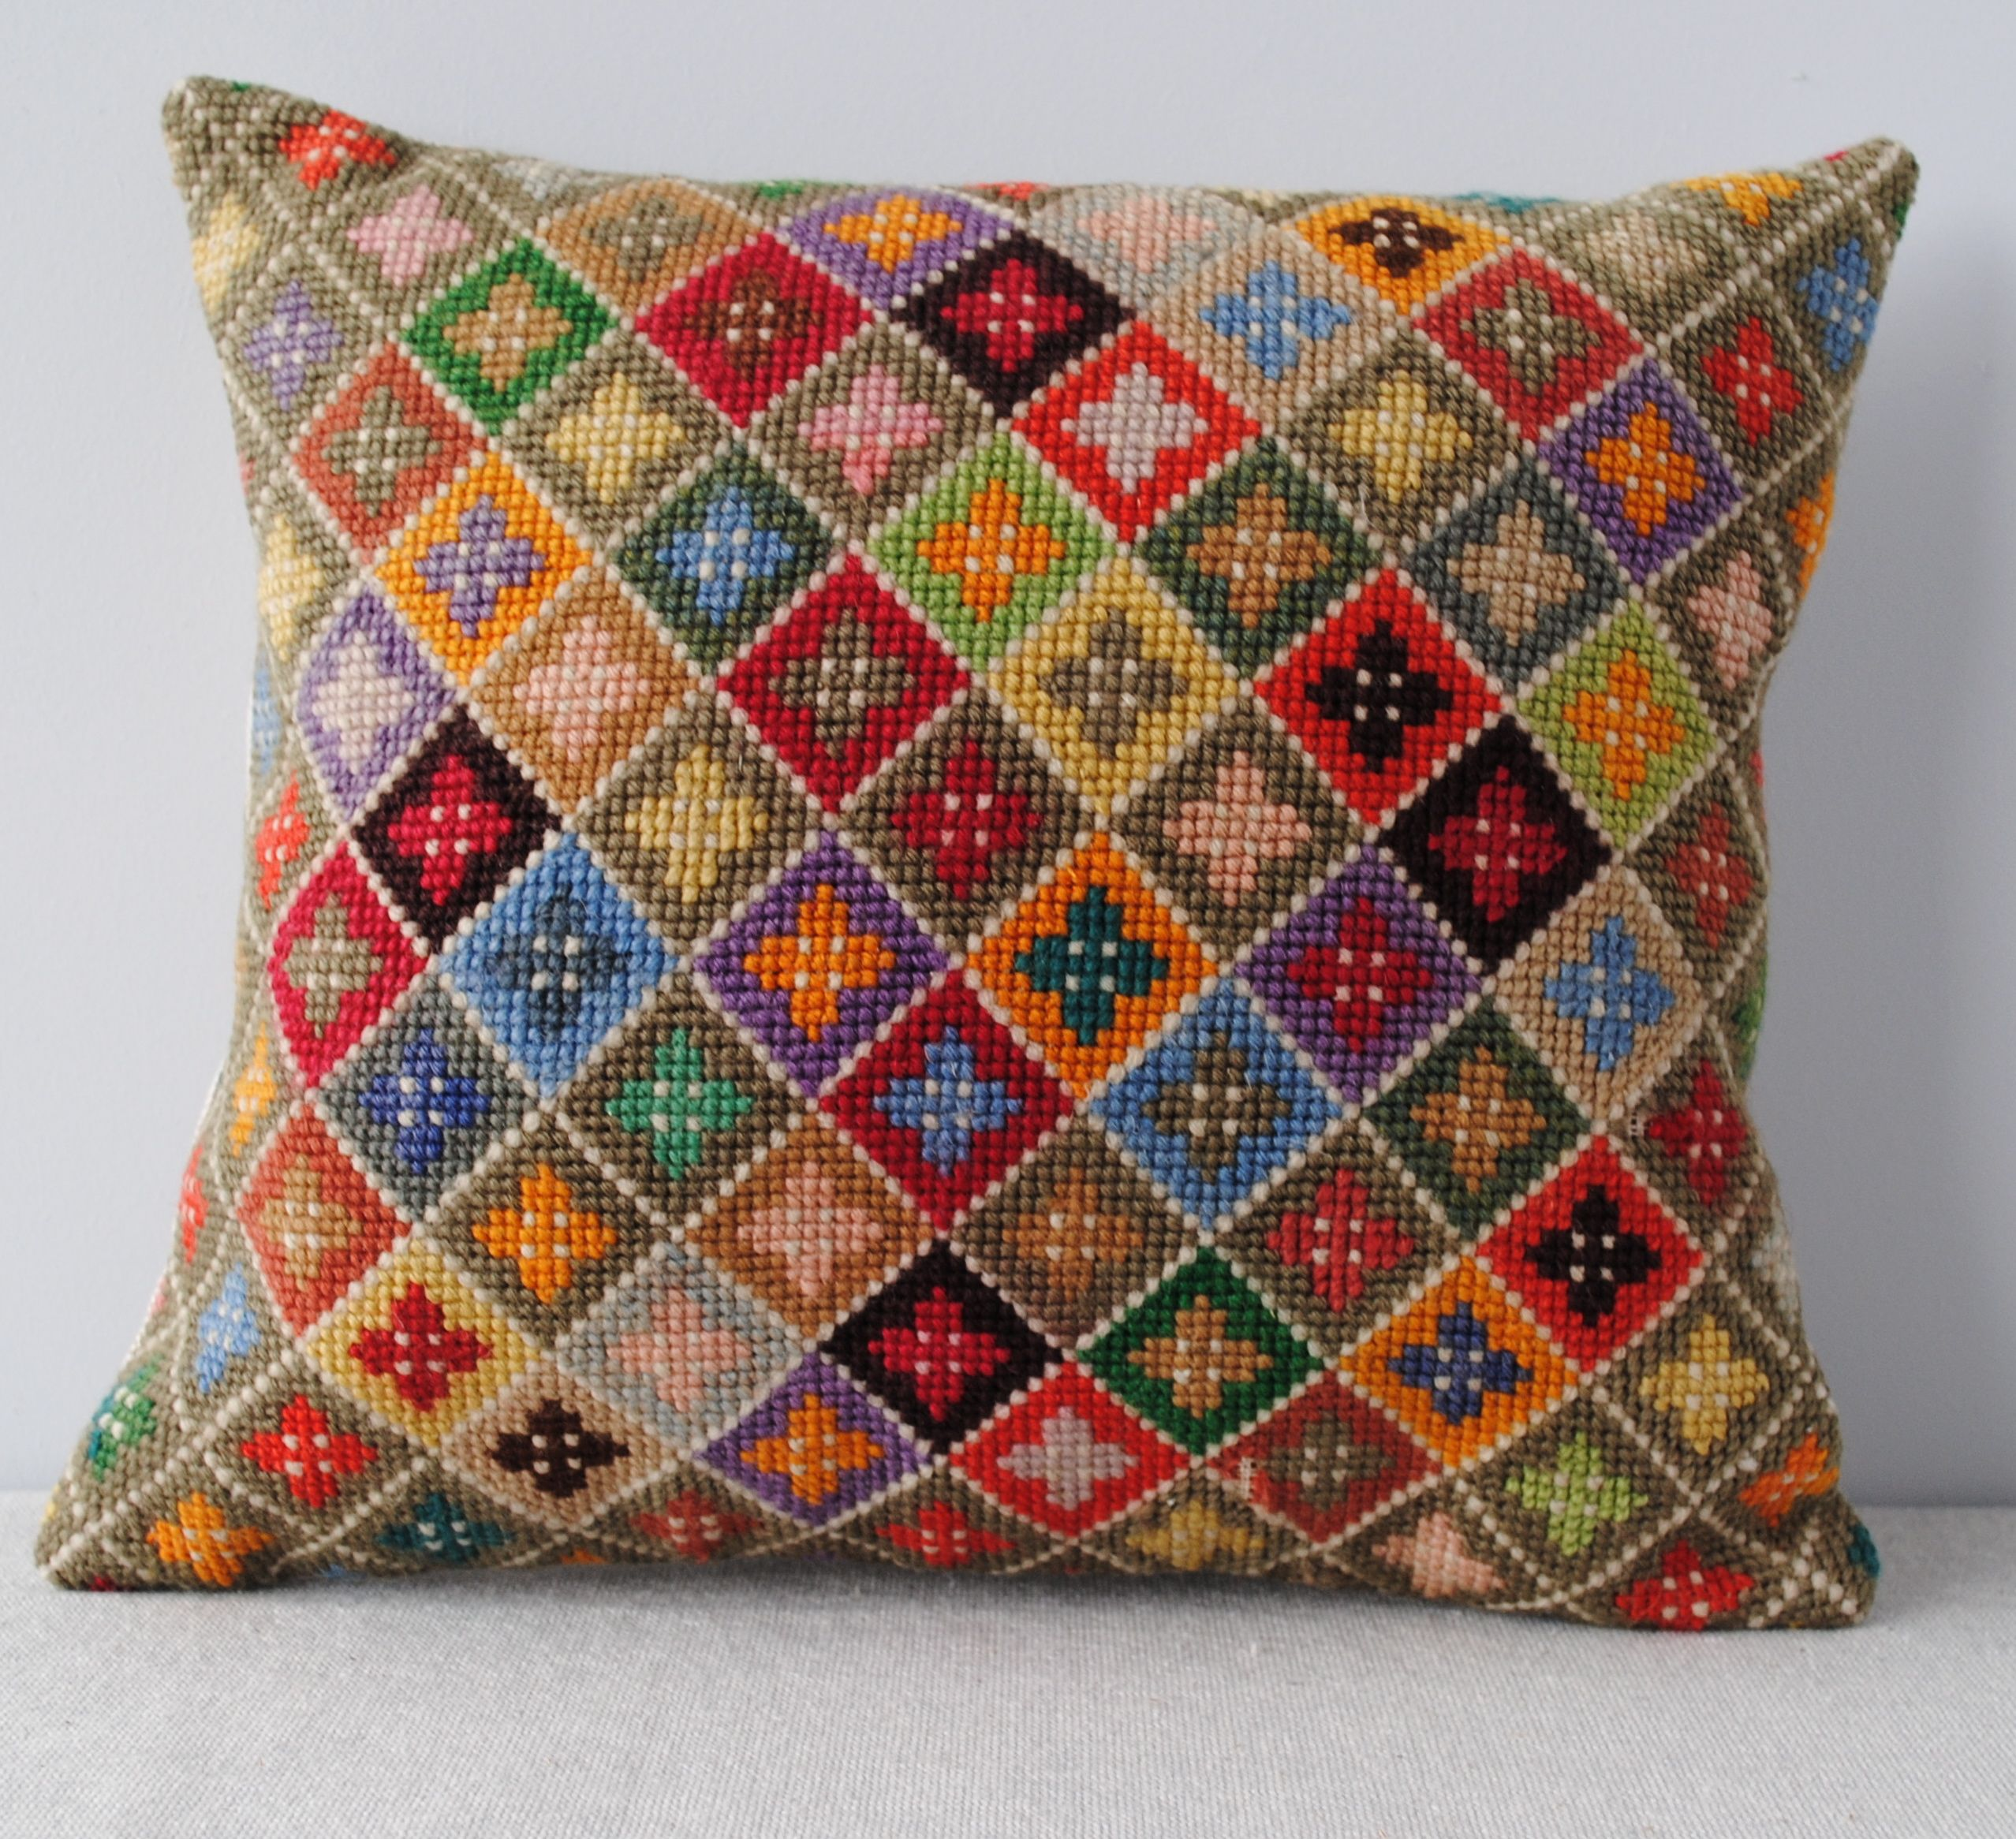 needlepoint cushion/pillow | Beautiful Needlepoint 7 ...